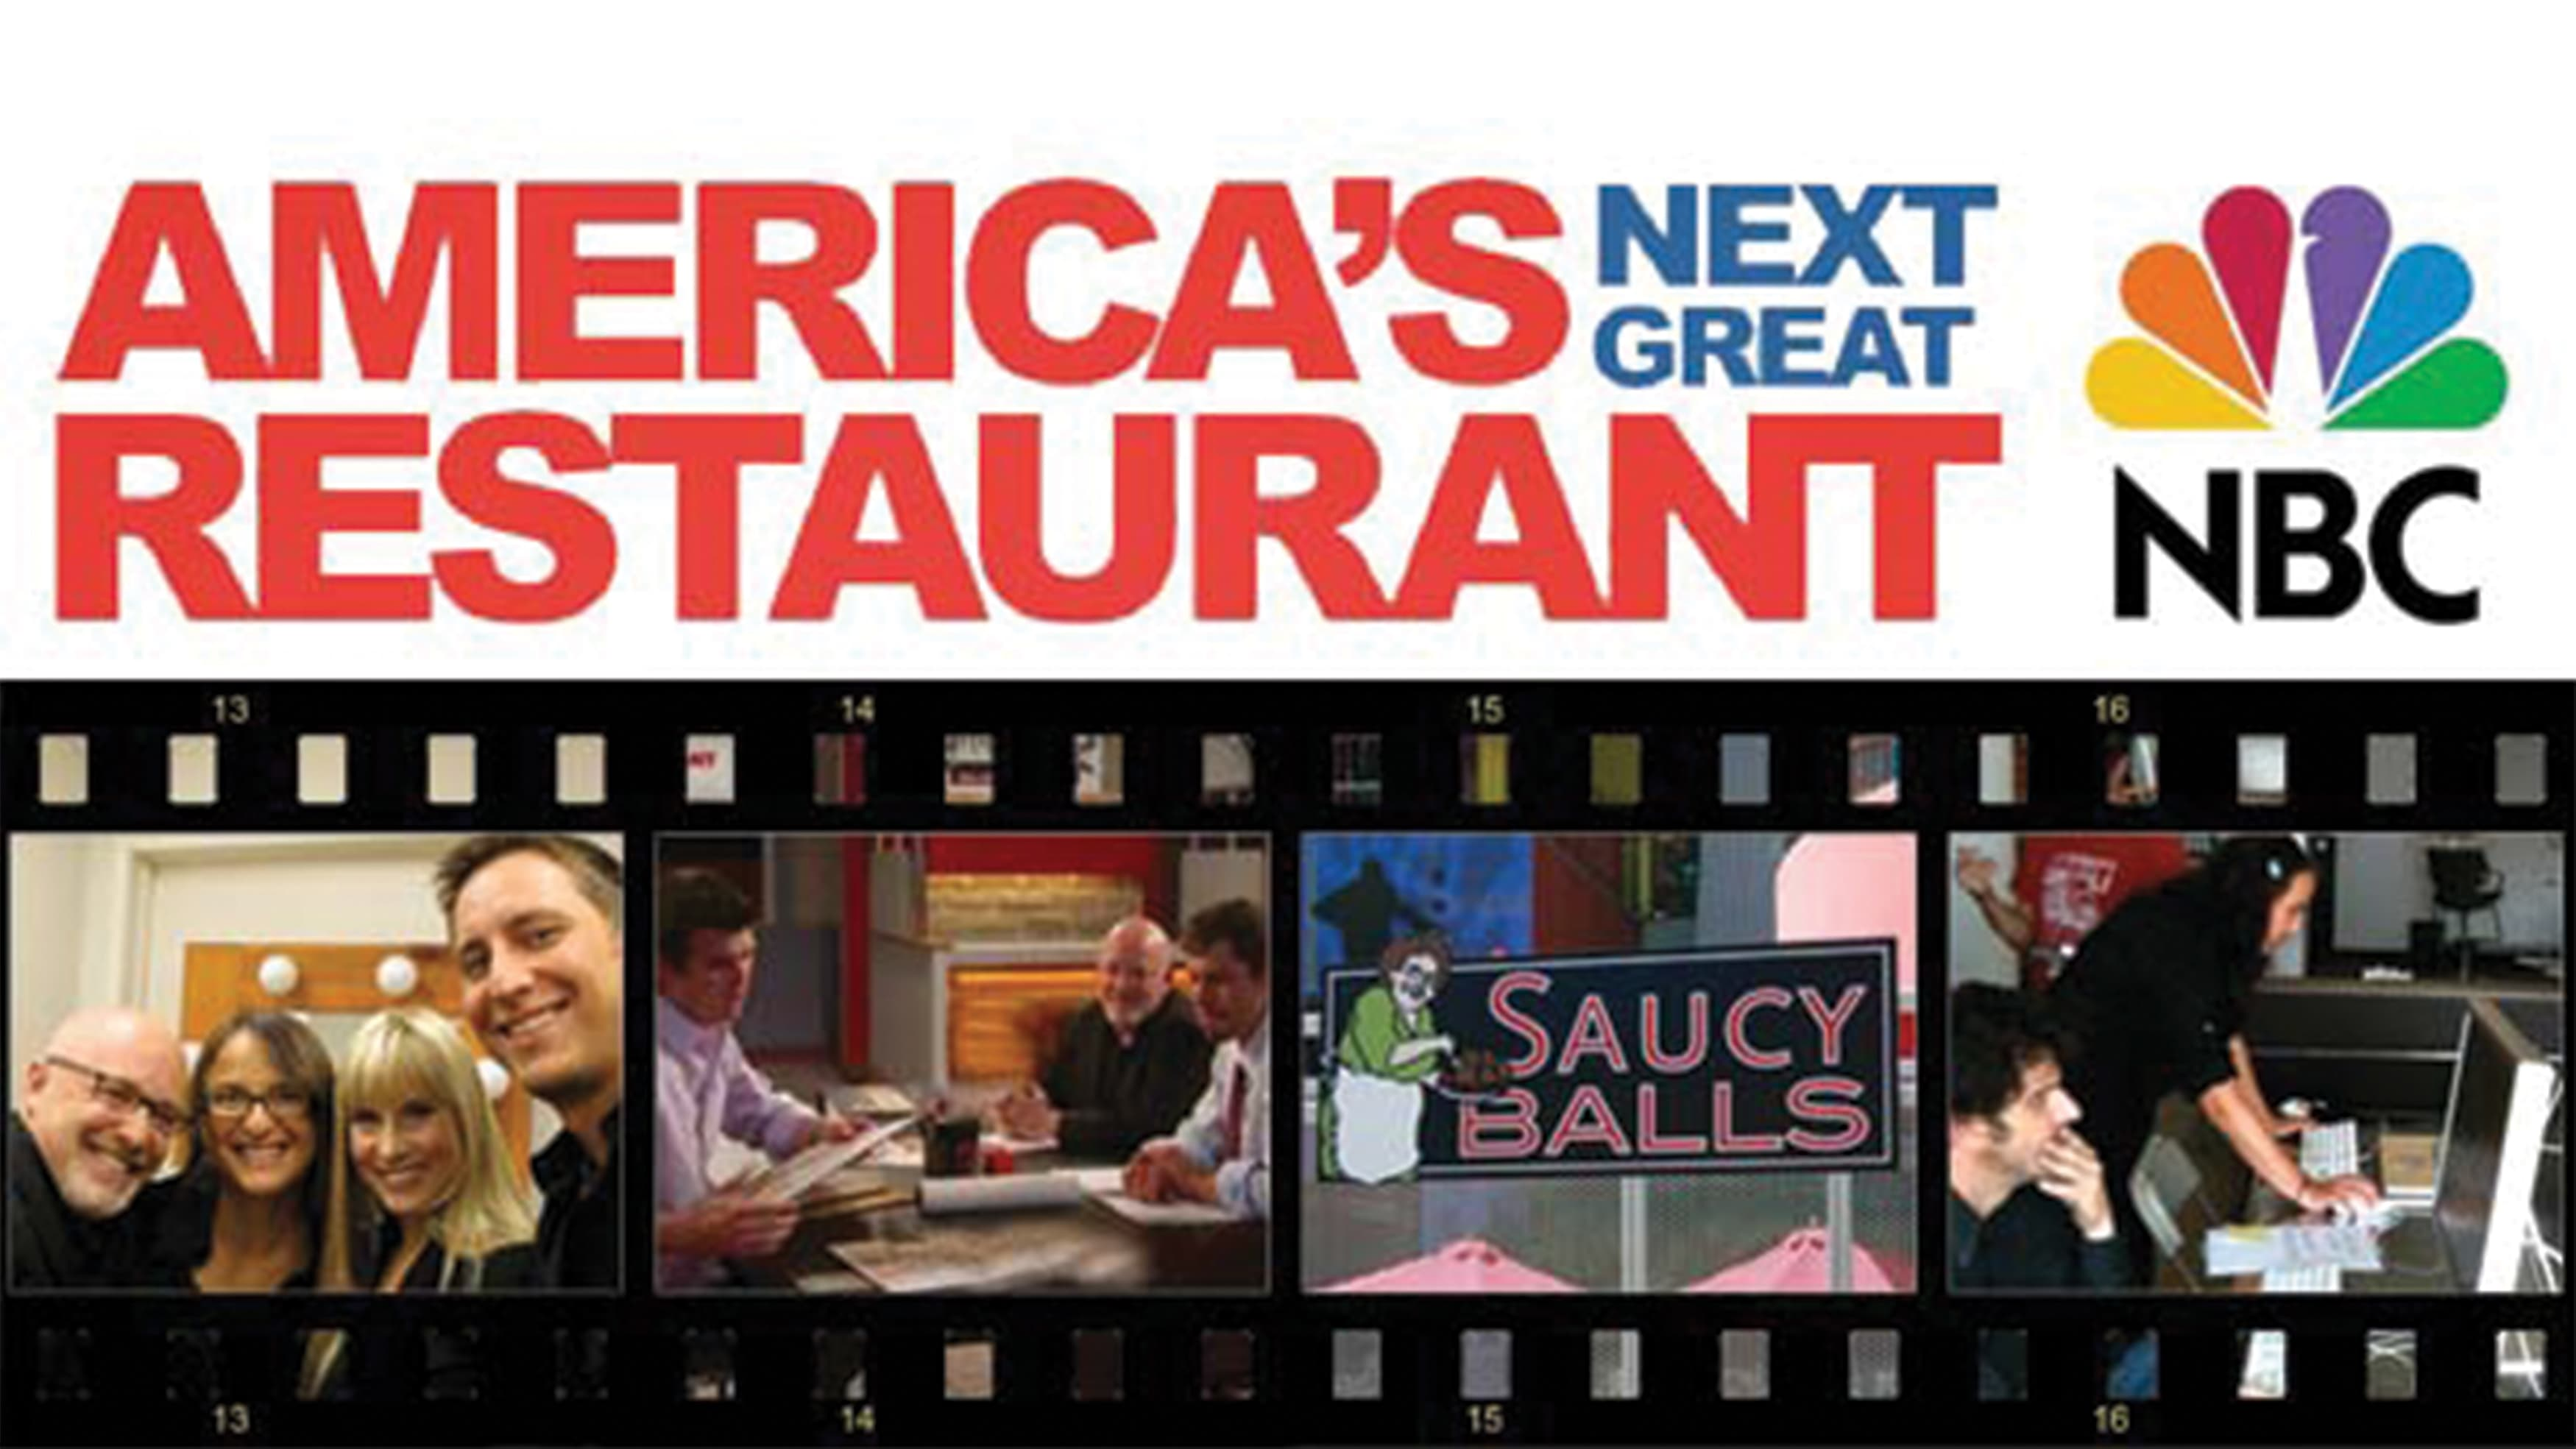 RSM team members appeared in NBC's America's Next Great Restaurant